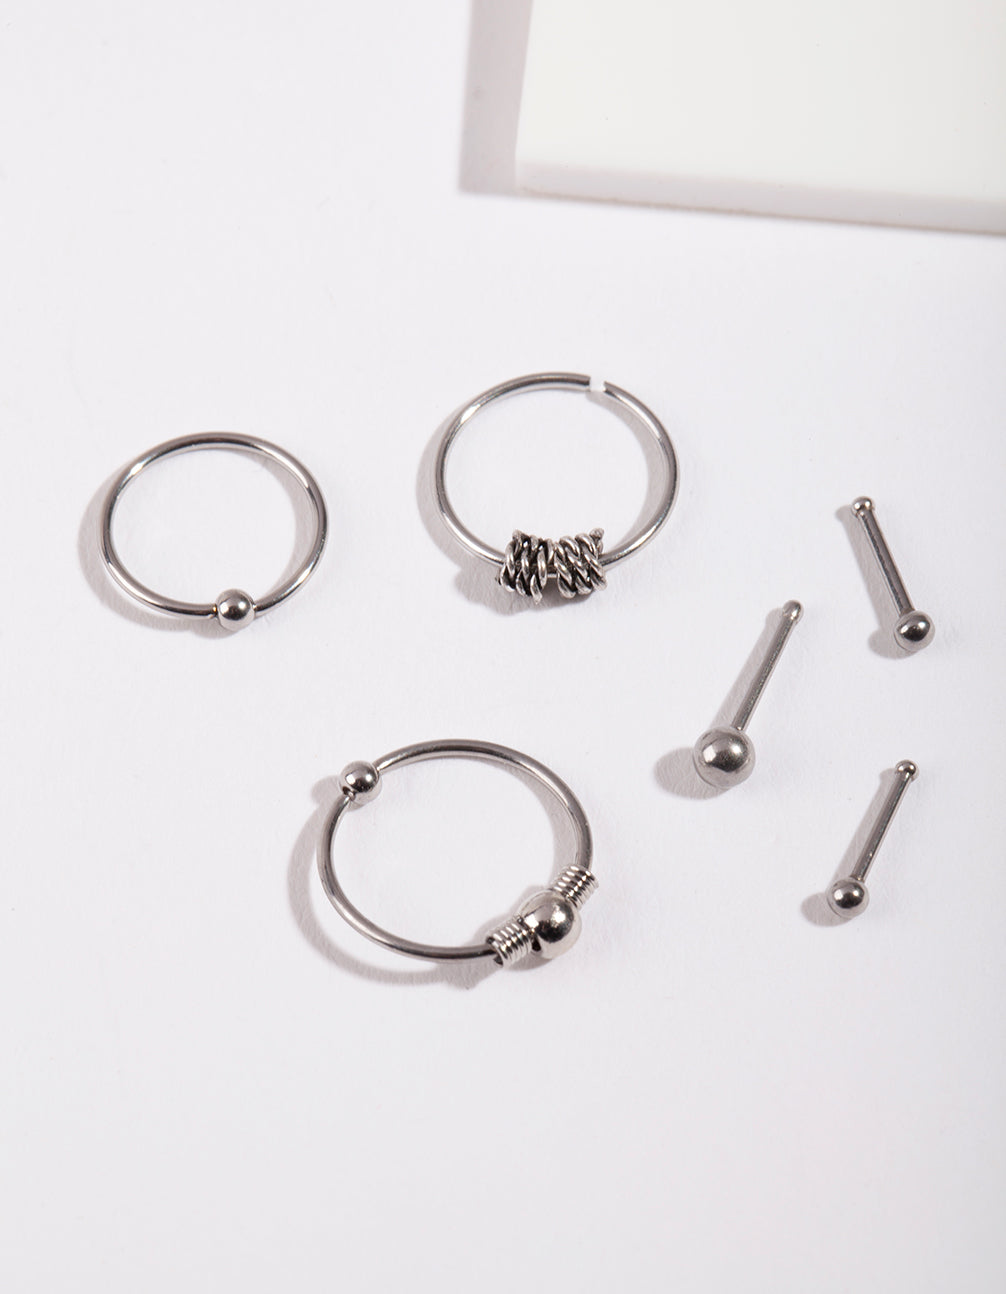 Rhodium Surgical Steel Ring & Bead Nose Pack